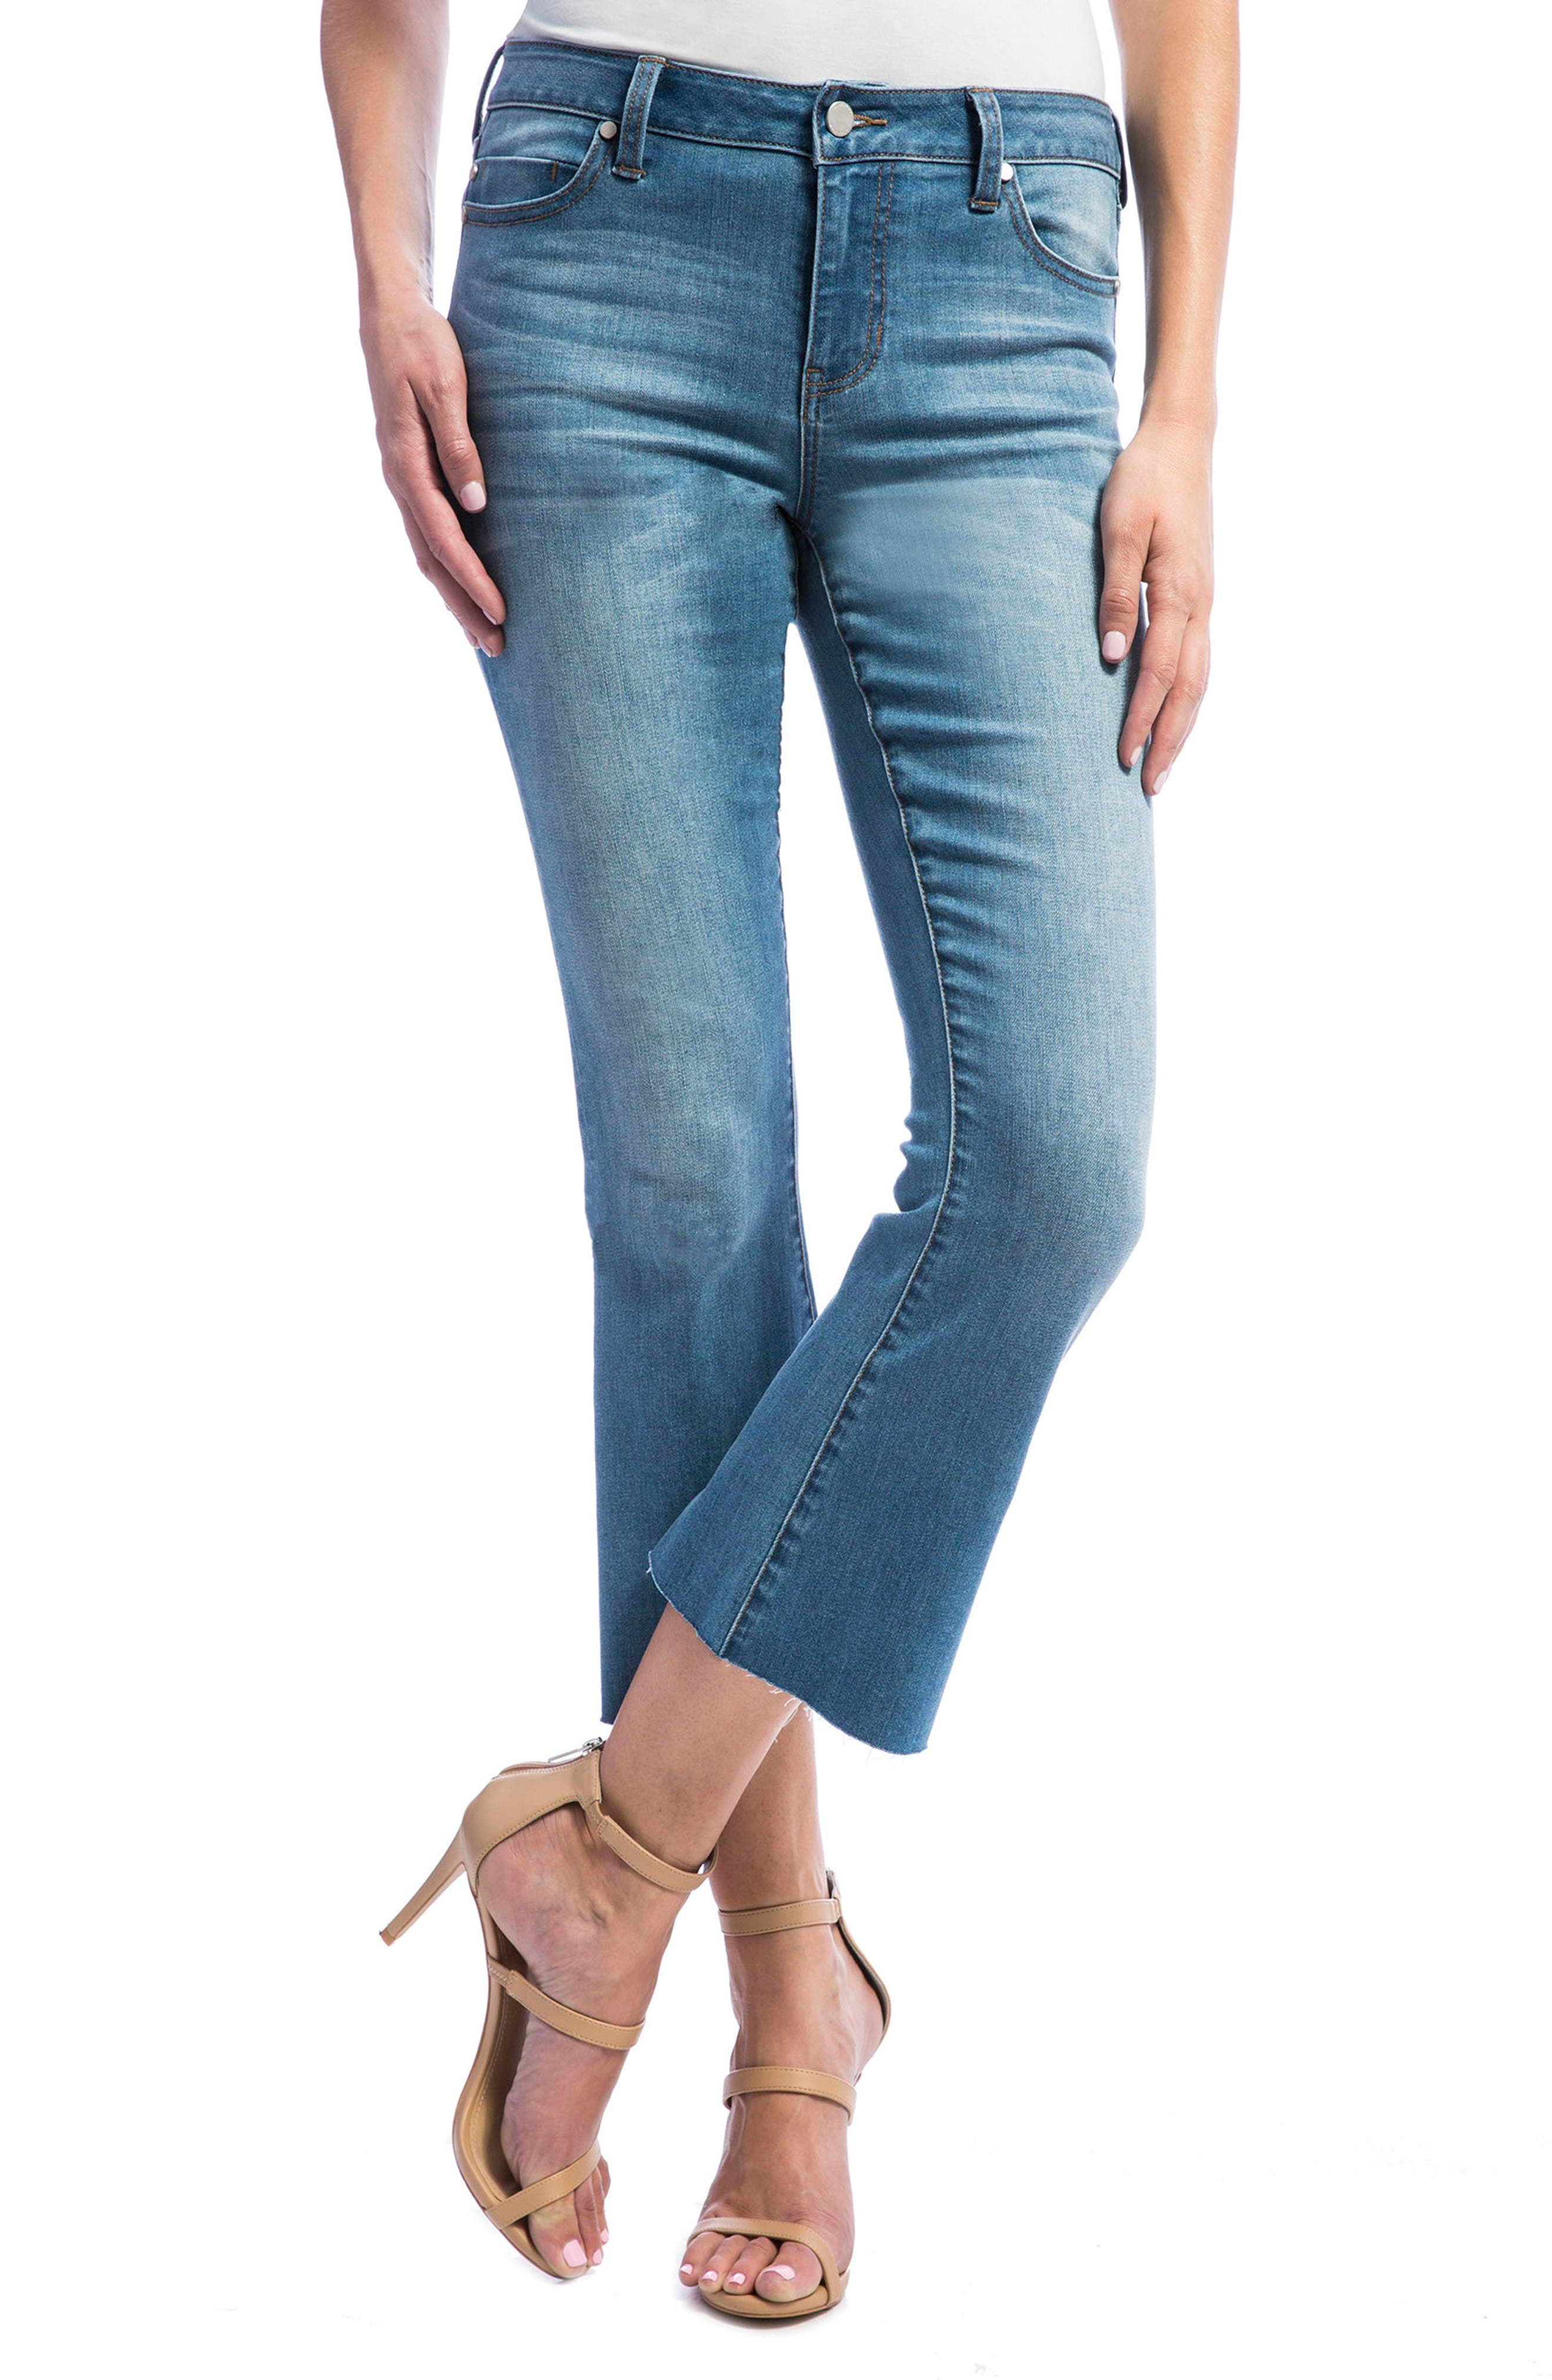 LIVERPOOL JEANS COMPANY Stretch Crop Flare Leg Jeans